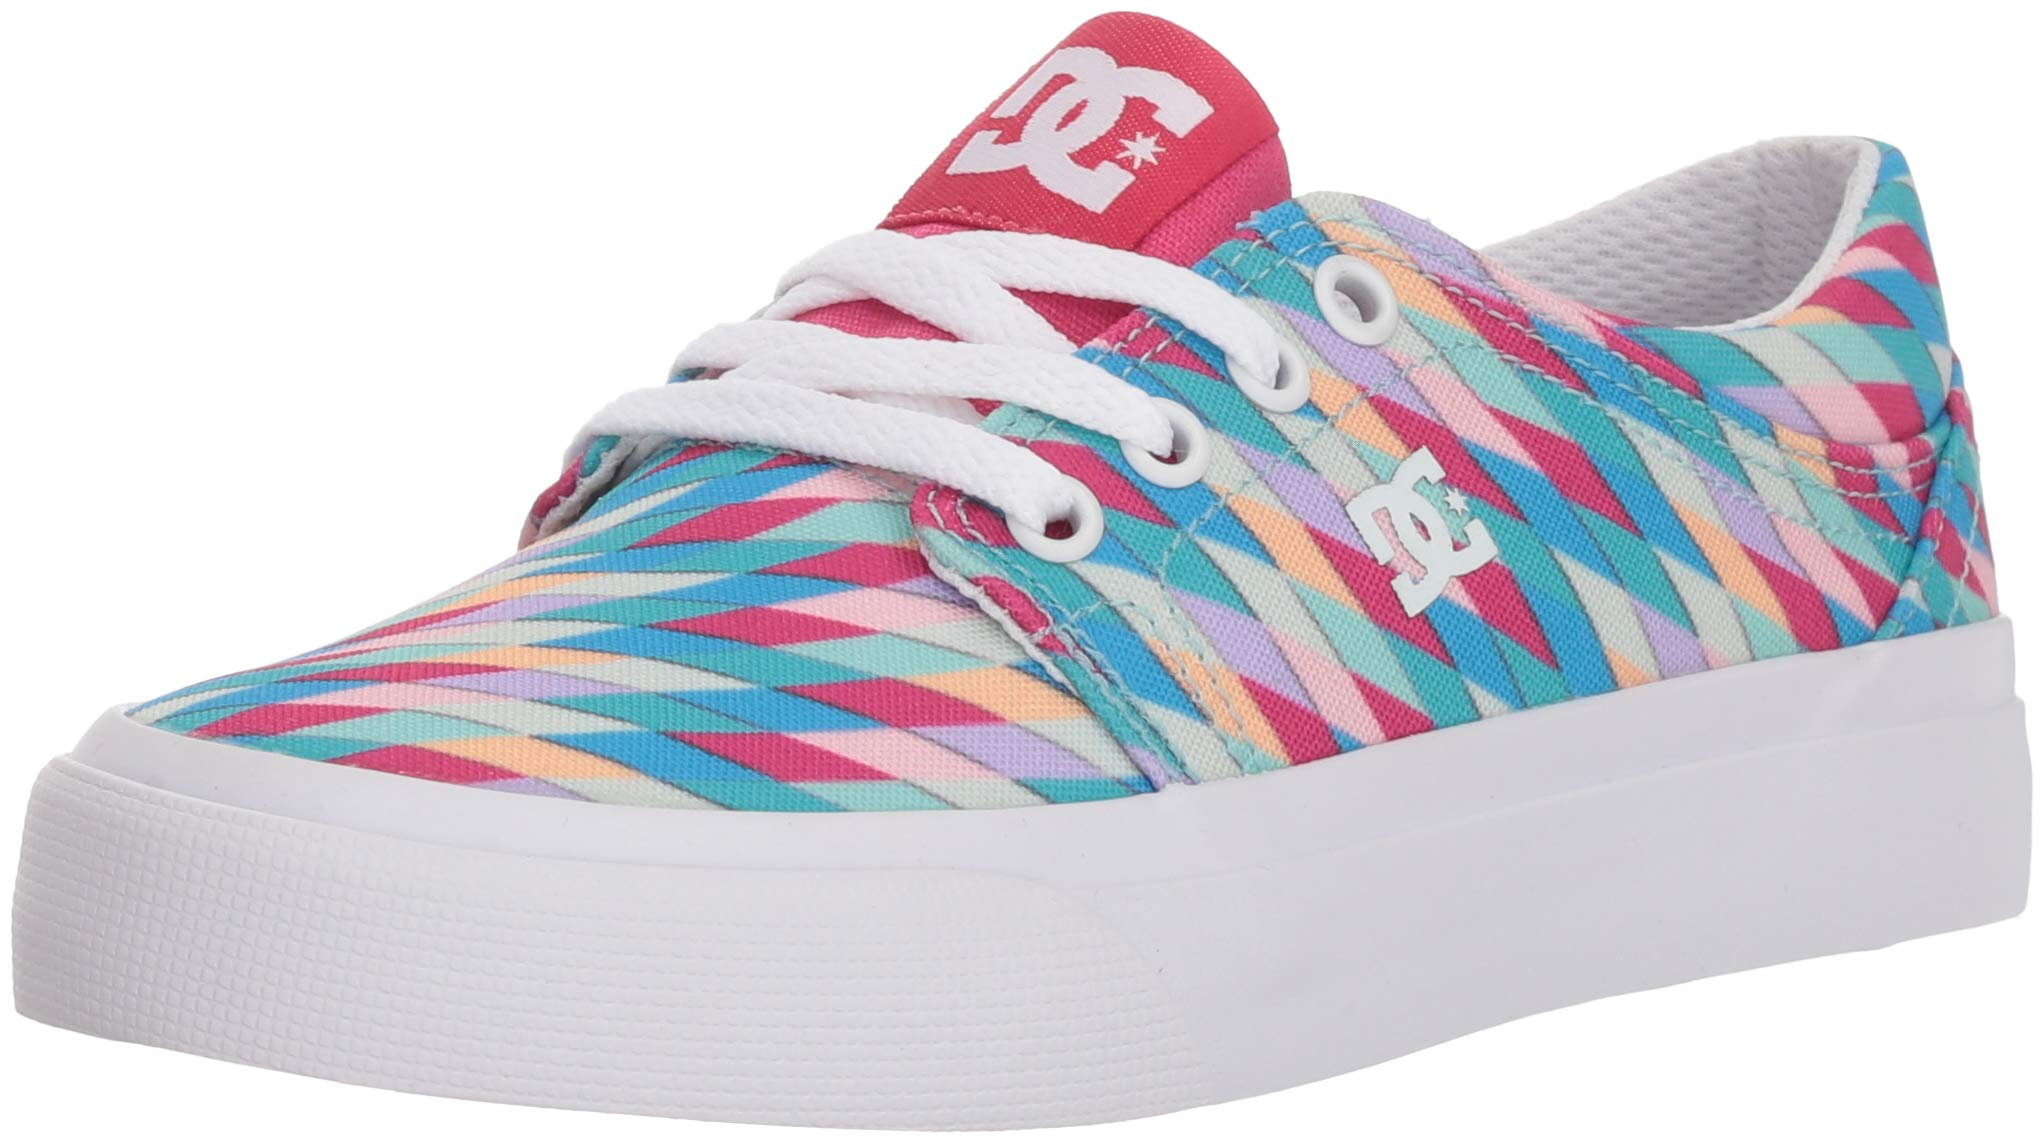 DC Youth Trase SP Skate Shoe (Little Big Kid), Multi, 12.5 M US